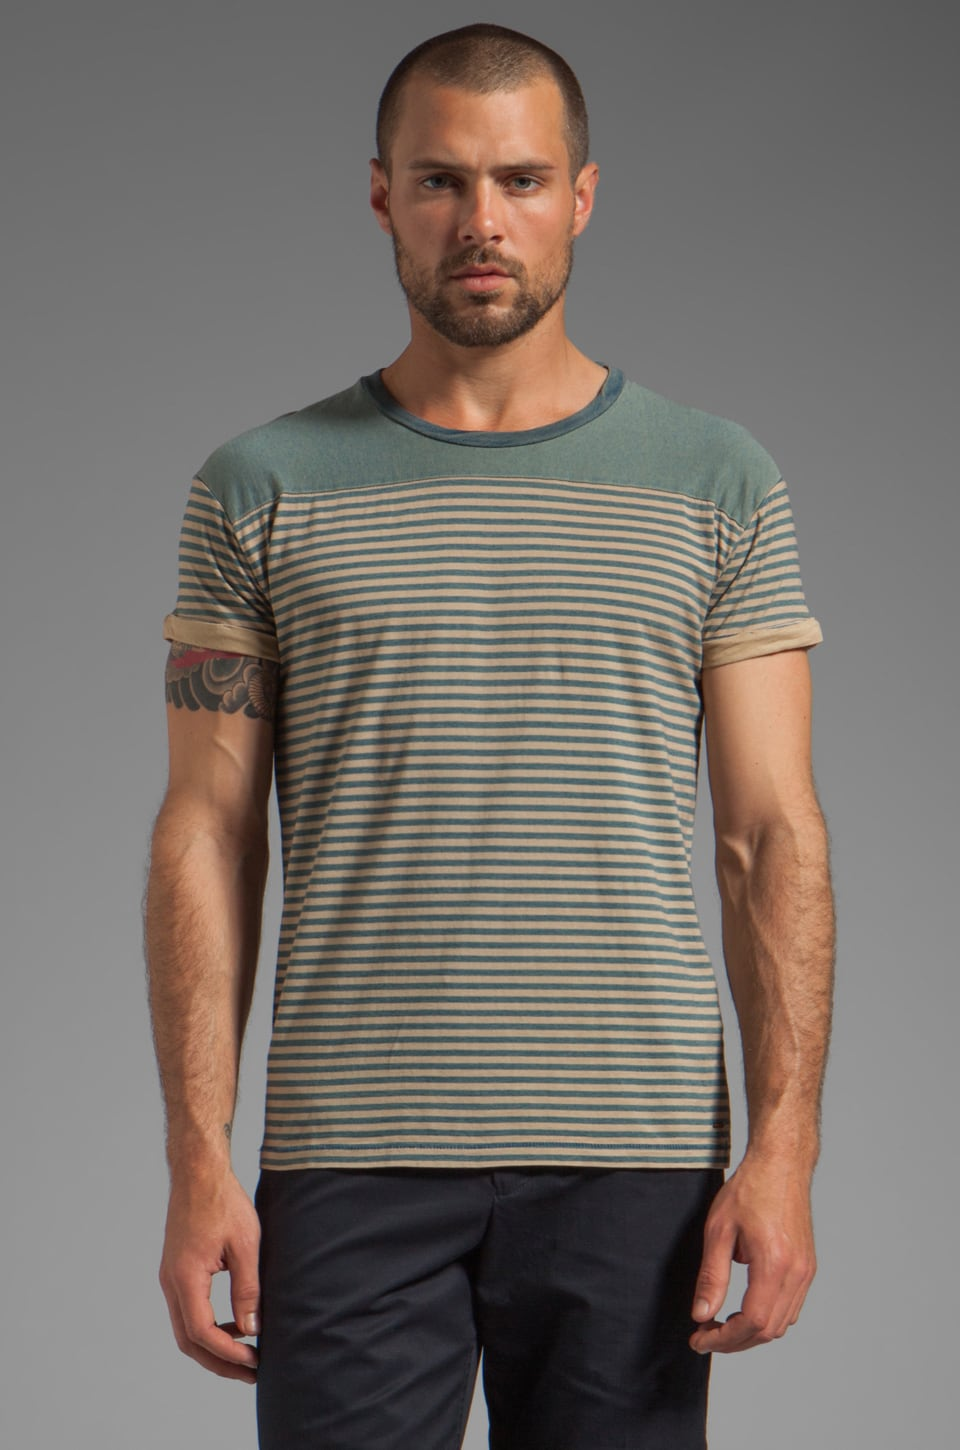 Scotch & Soda Stripe Tee in Blue/Brown